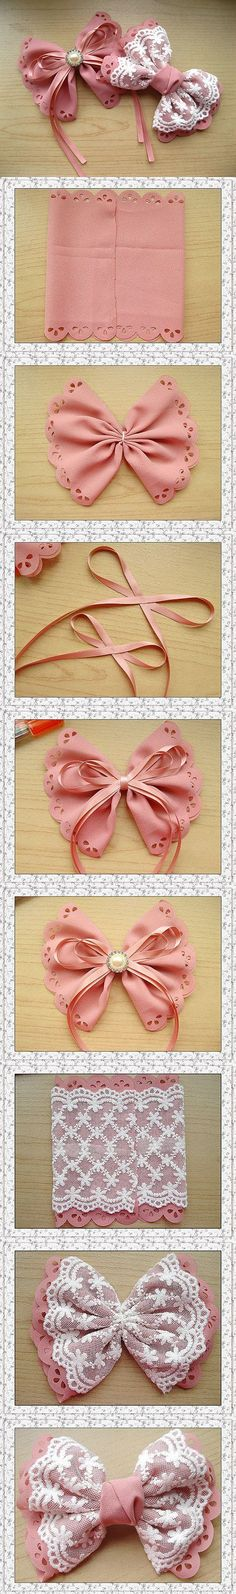 Bows - so cute!